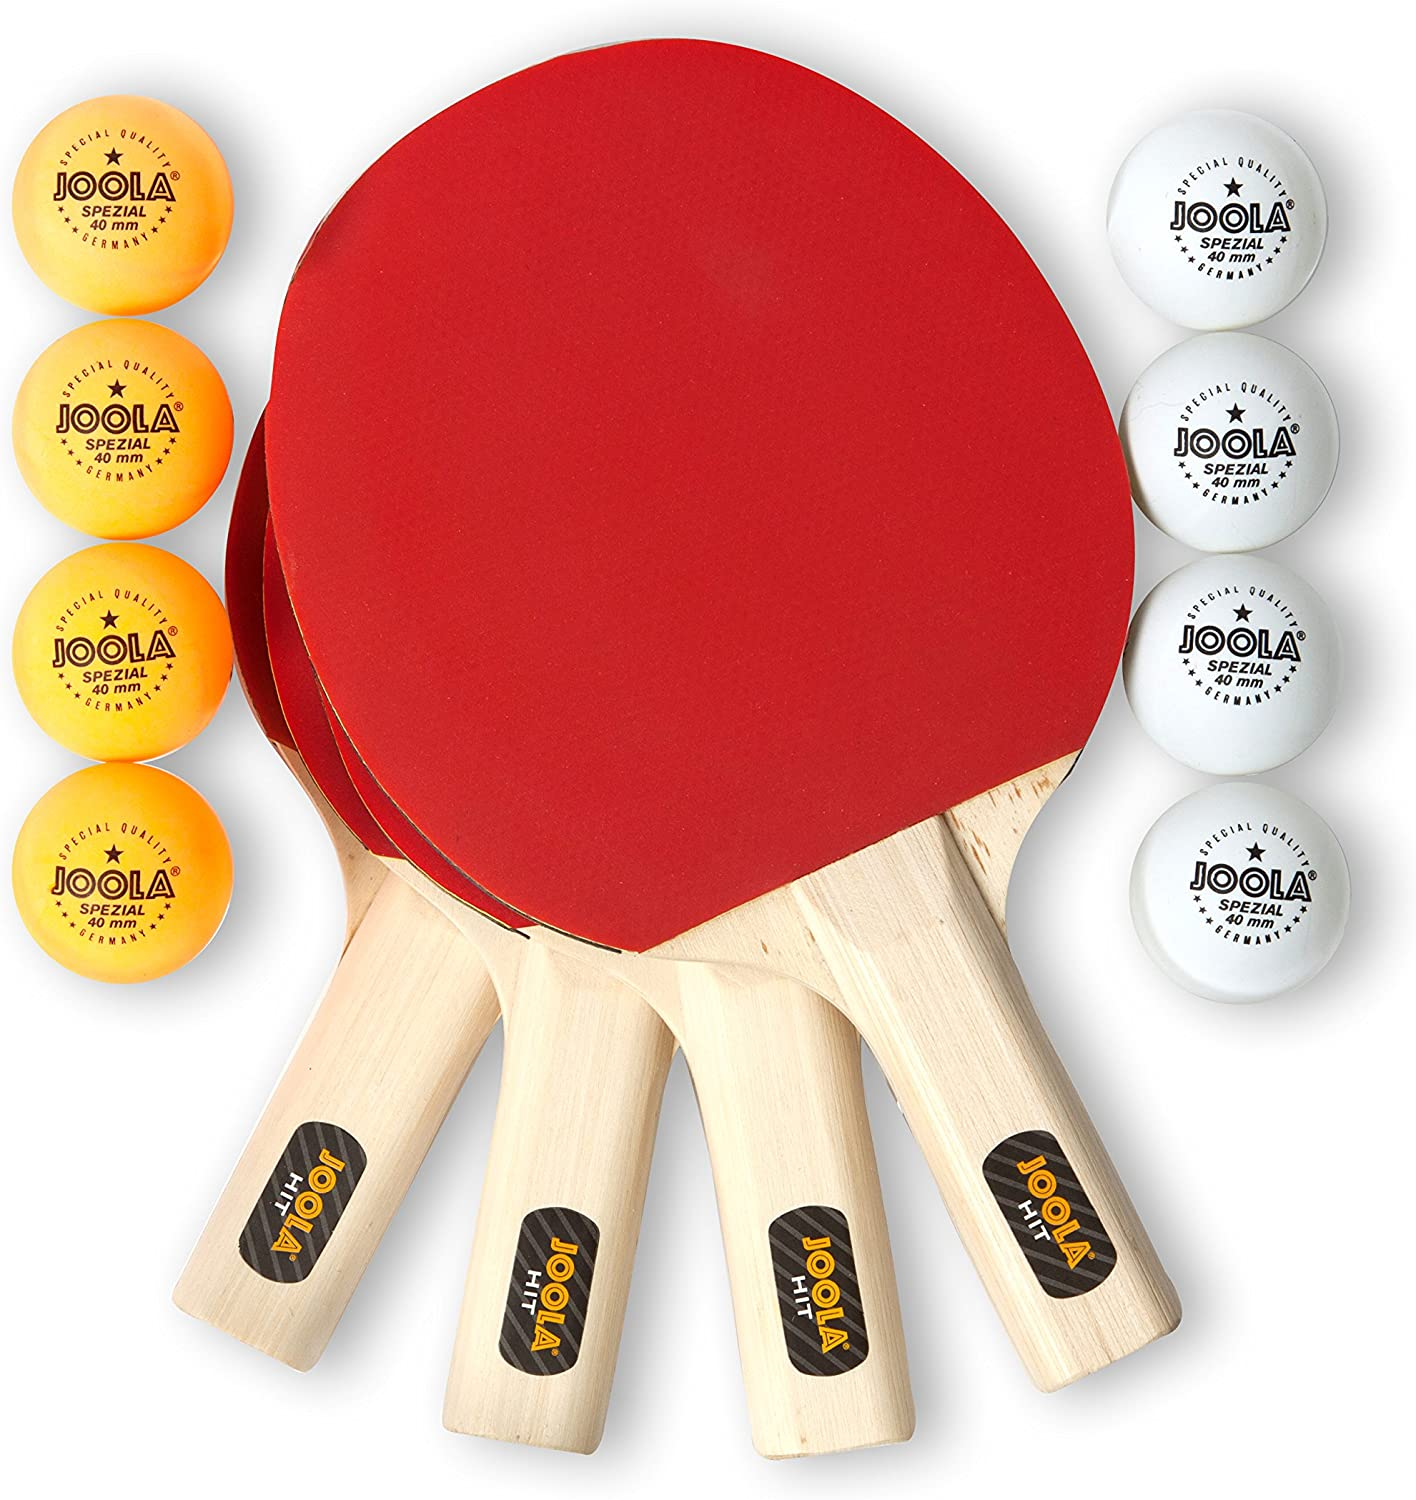 JOOLA All-in-One Indoor Table Tennis Hit Set (Bundle Includes 4 Rackets/Paddles, 8 Balls, Carrying Case), Multi, One Size (59152) : Beginner Table Tennis Rackets : Sports & Outdoors